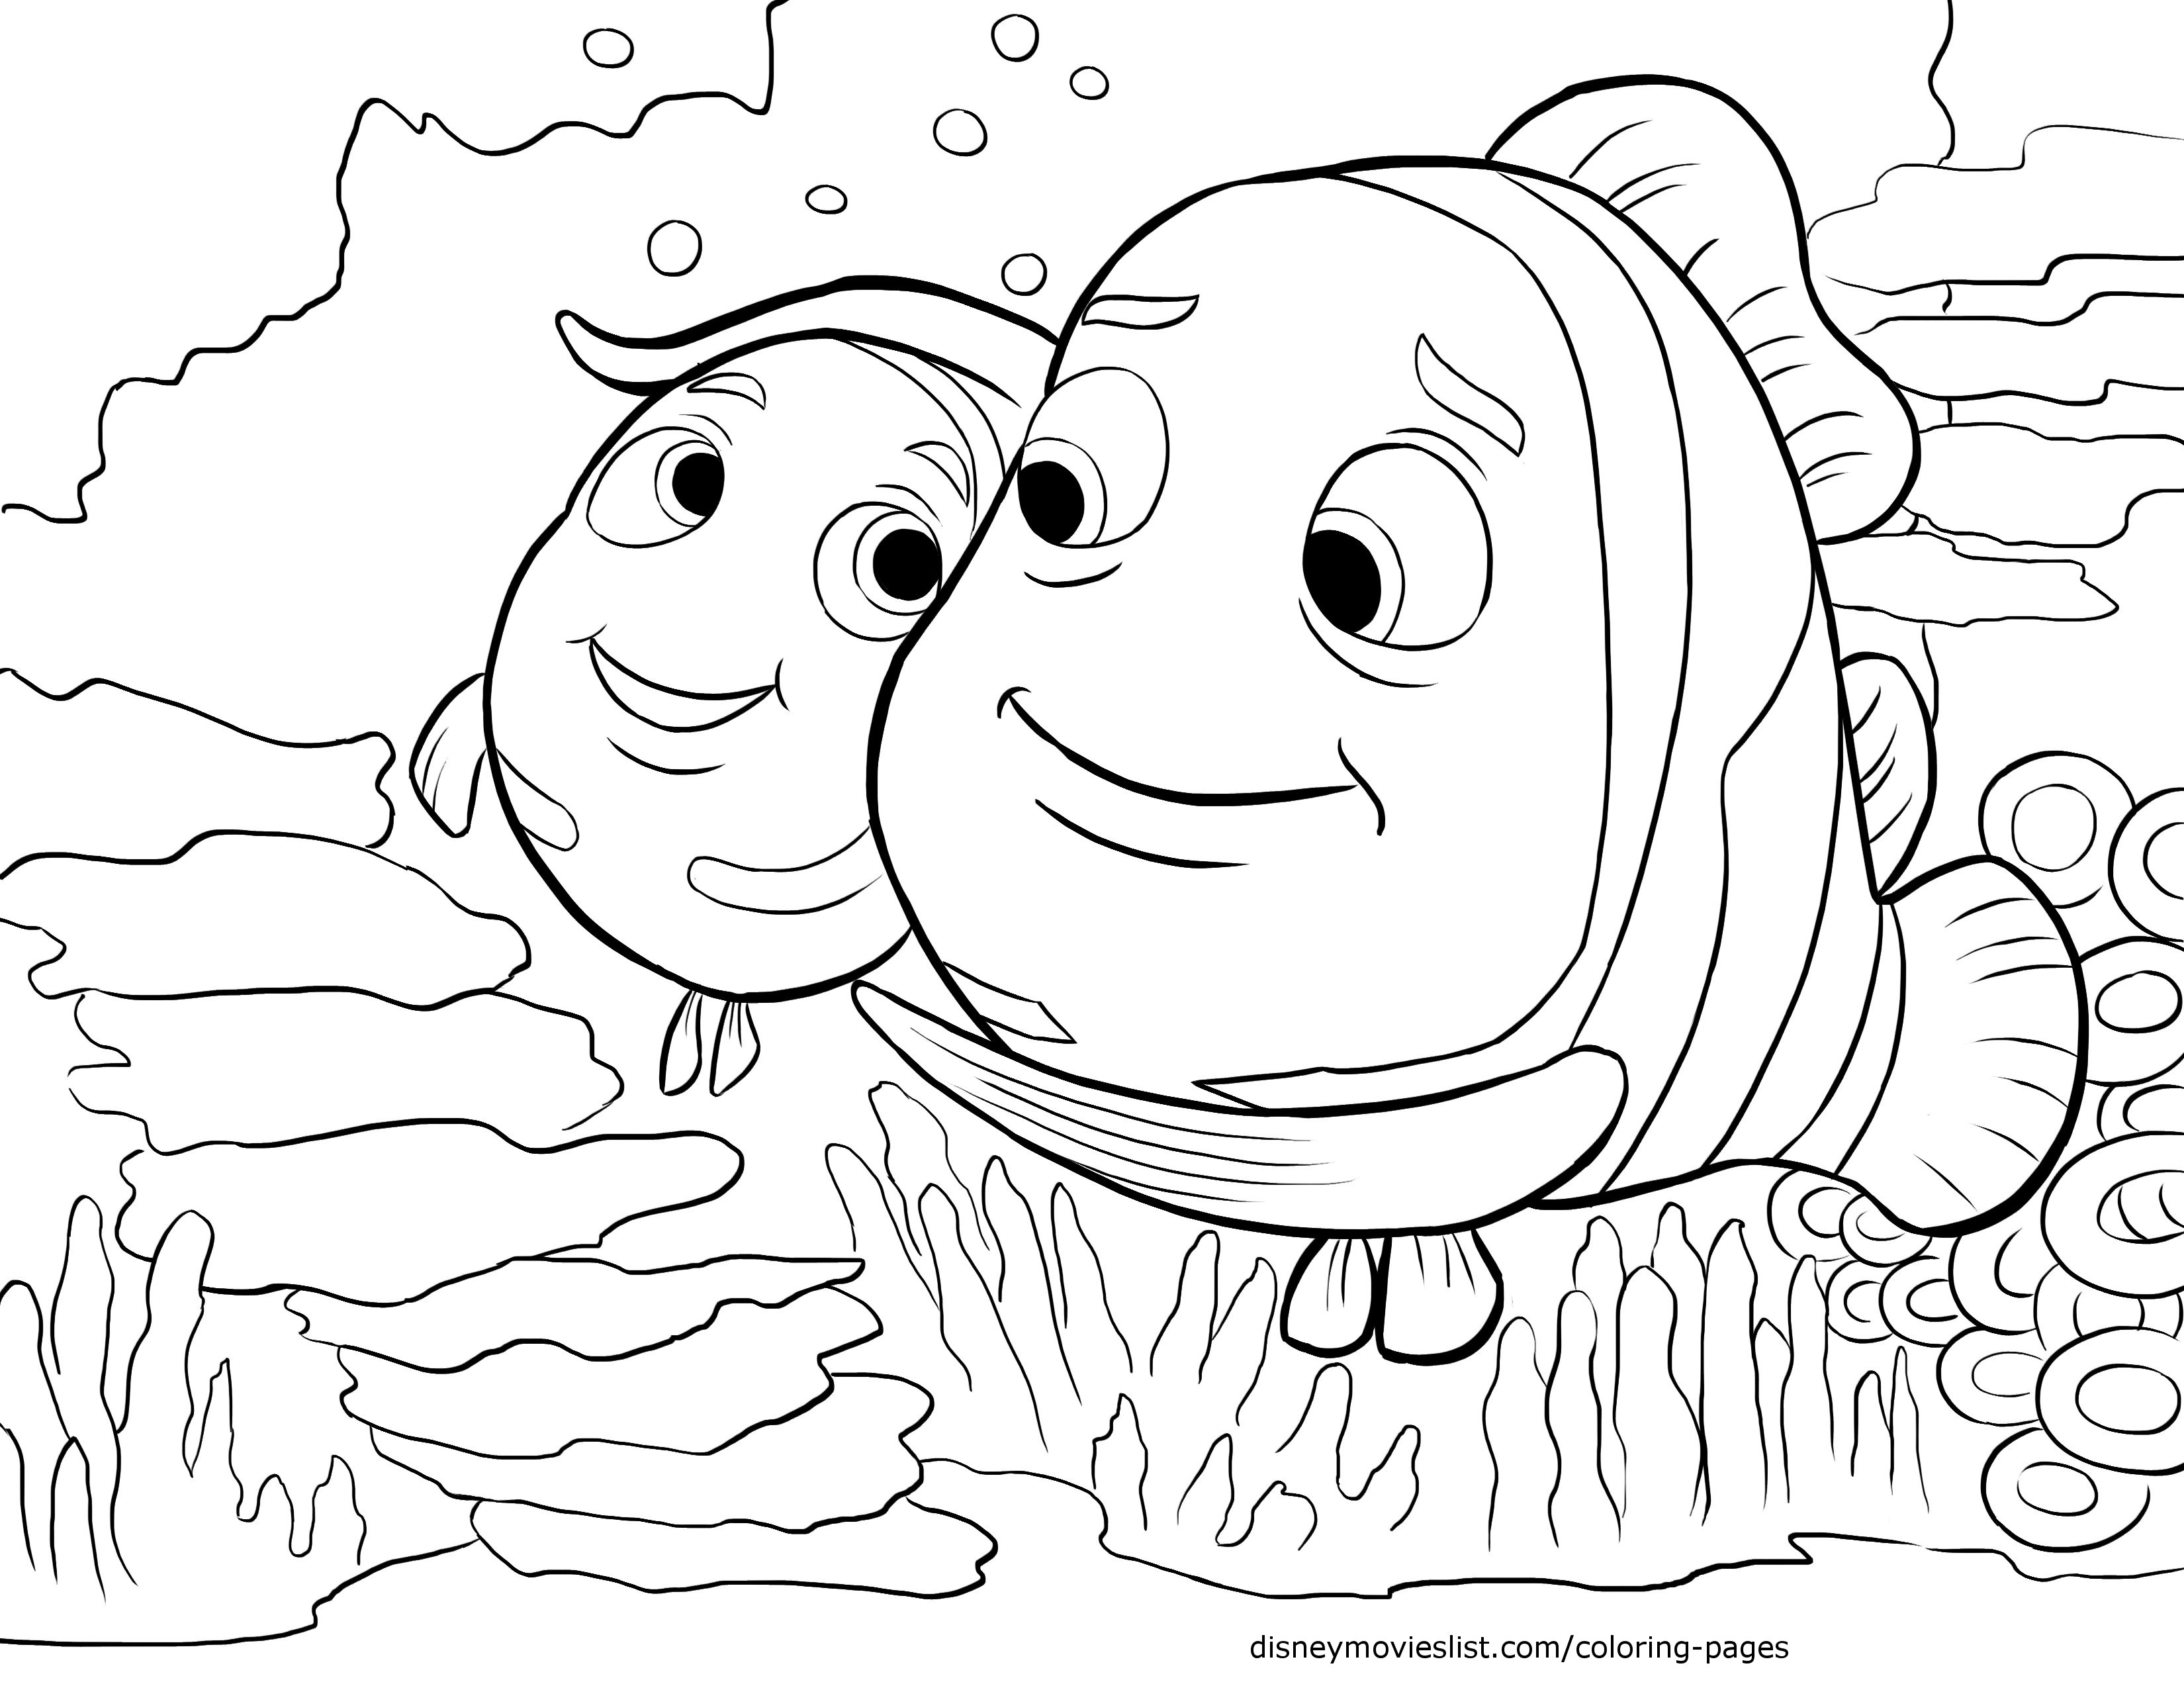 3300x2550 Awesome Disney S Finding Nemo Coloring Pages Sheet Free Disney